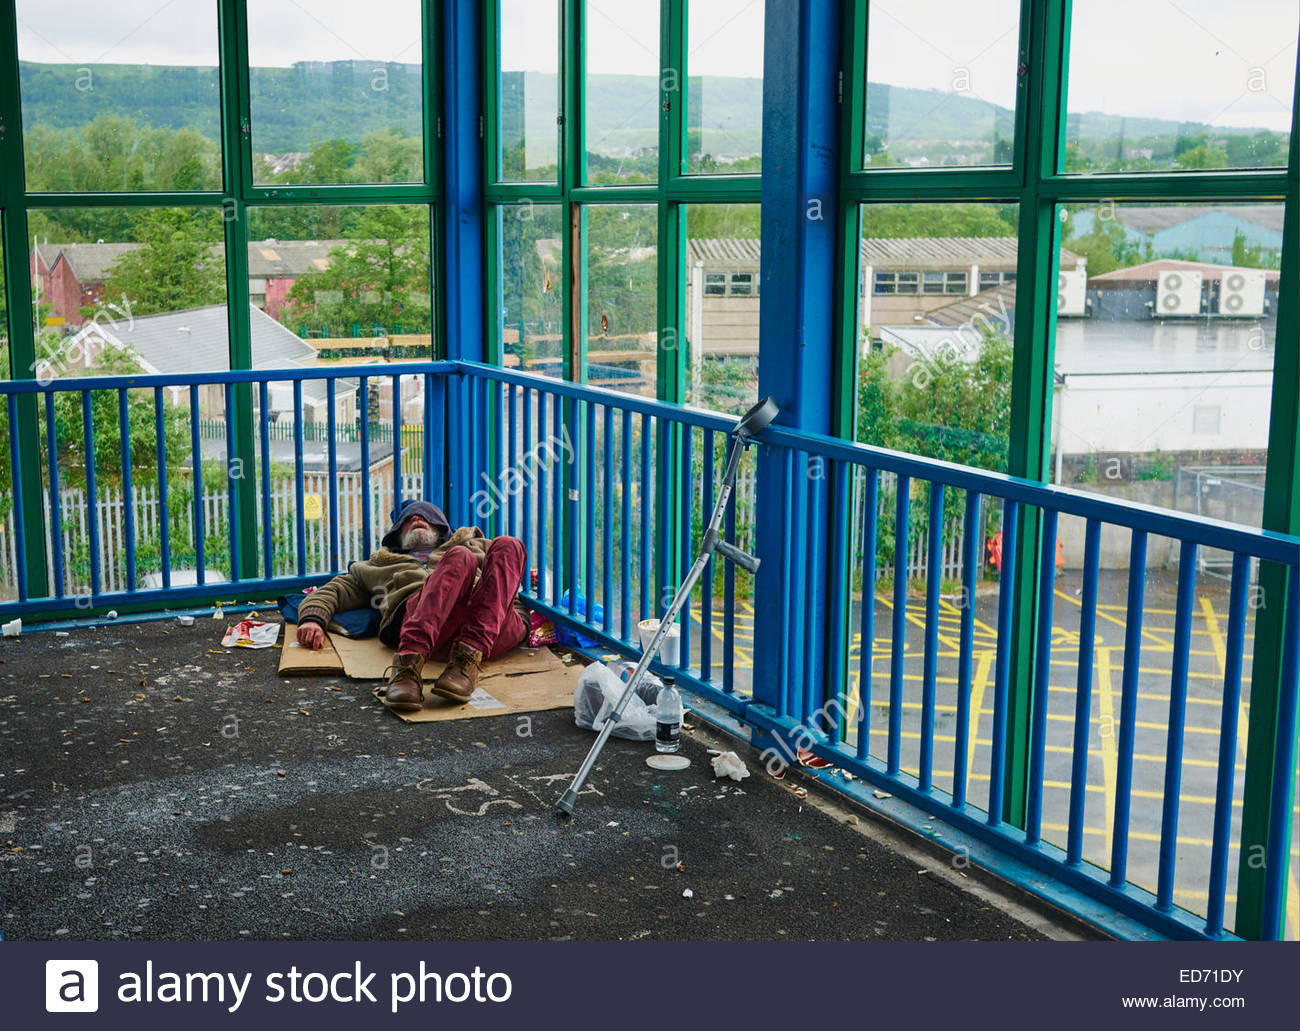 homeless tramp person sleeping rough in neath town centre south wales uk - Stock Image